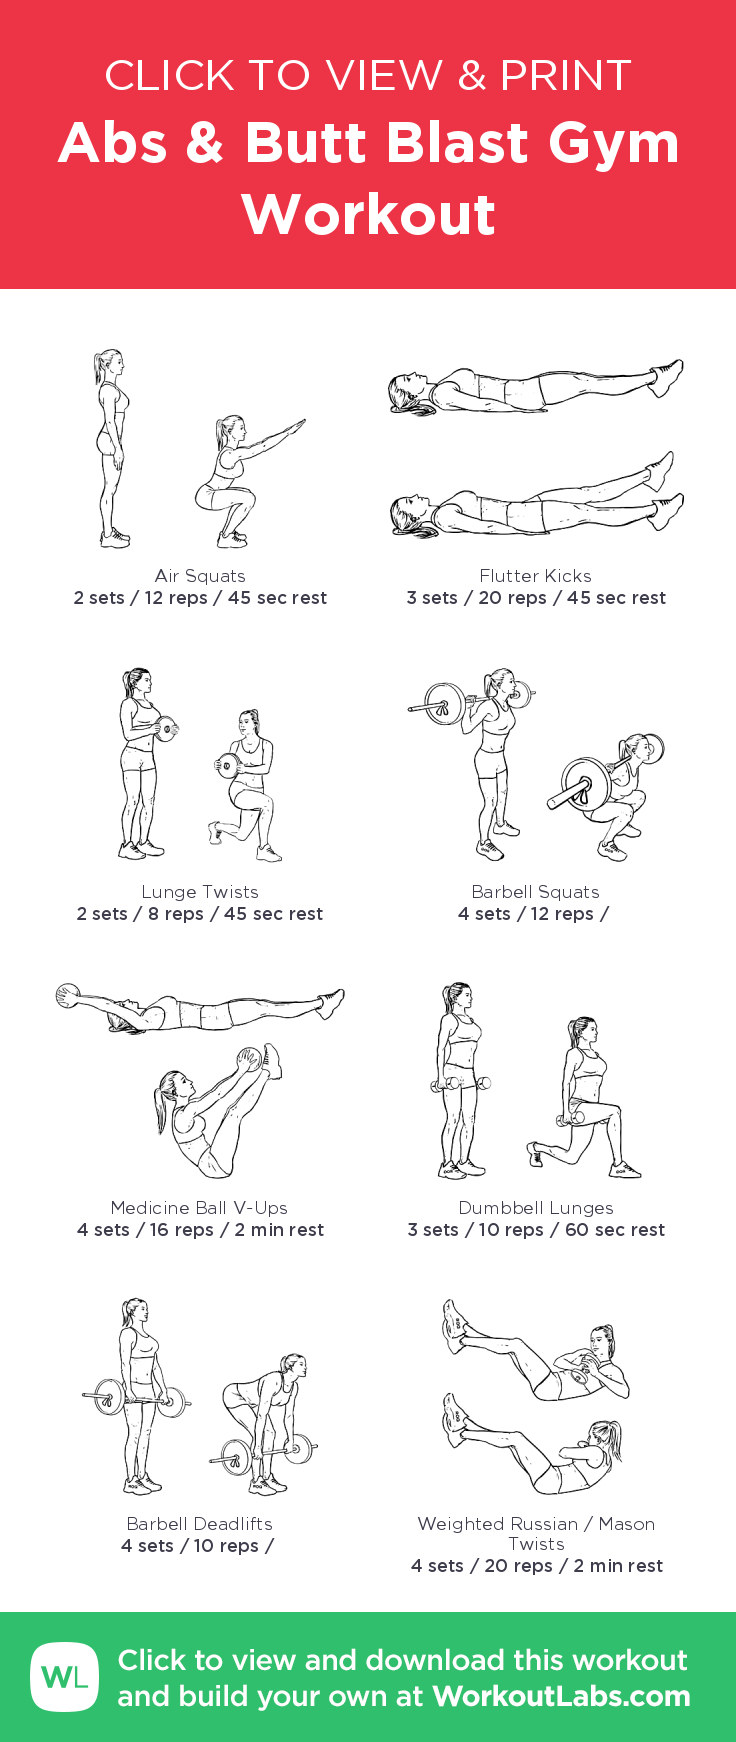 Abs & Butt Blast Gym Workout – Illustrated Exercise Plan Created At - Free Printable Gym Workout Plans